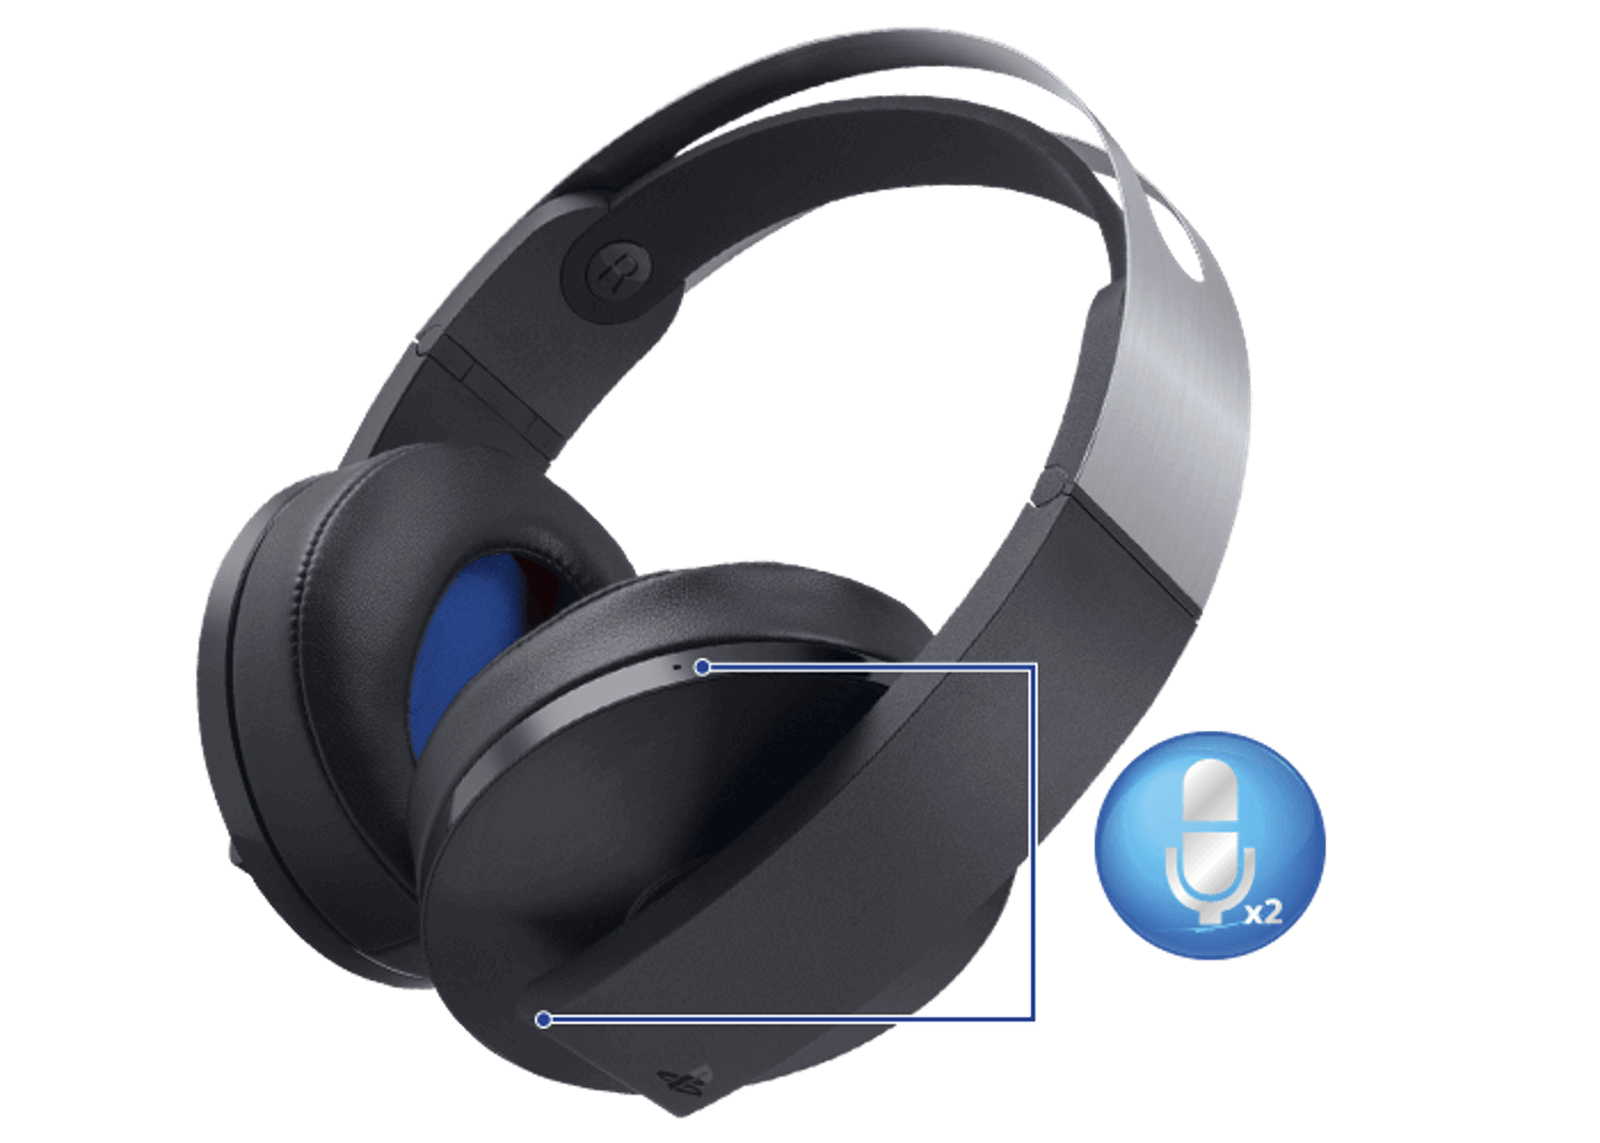 Sony ps4 headphone with premium gaming audio features